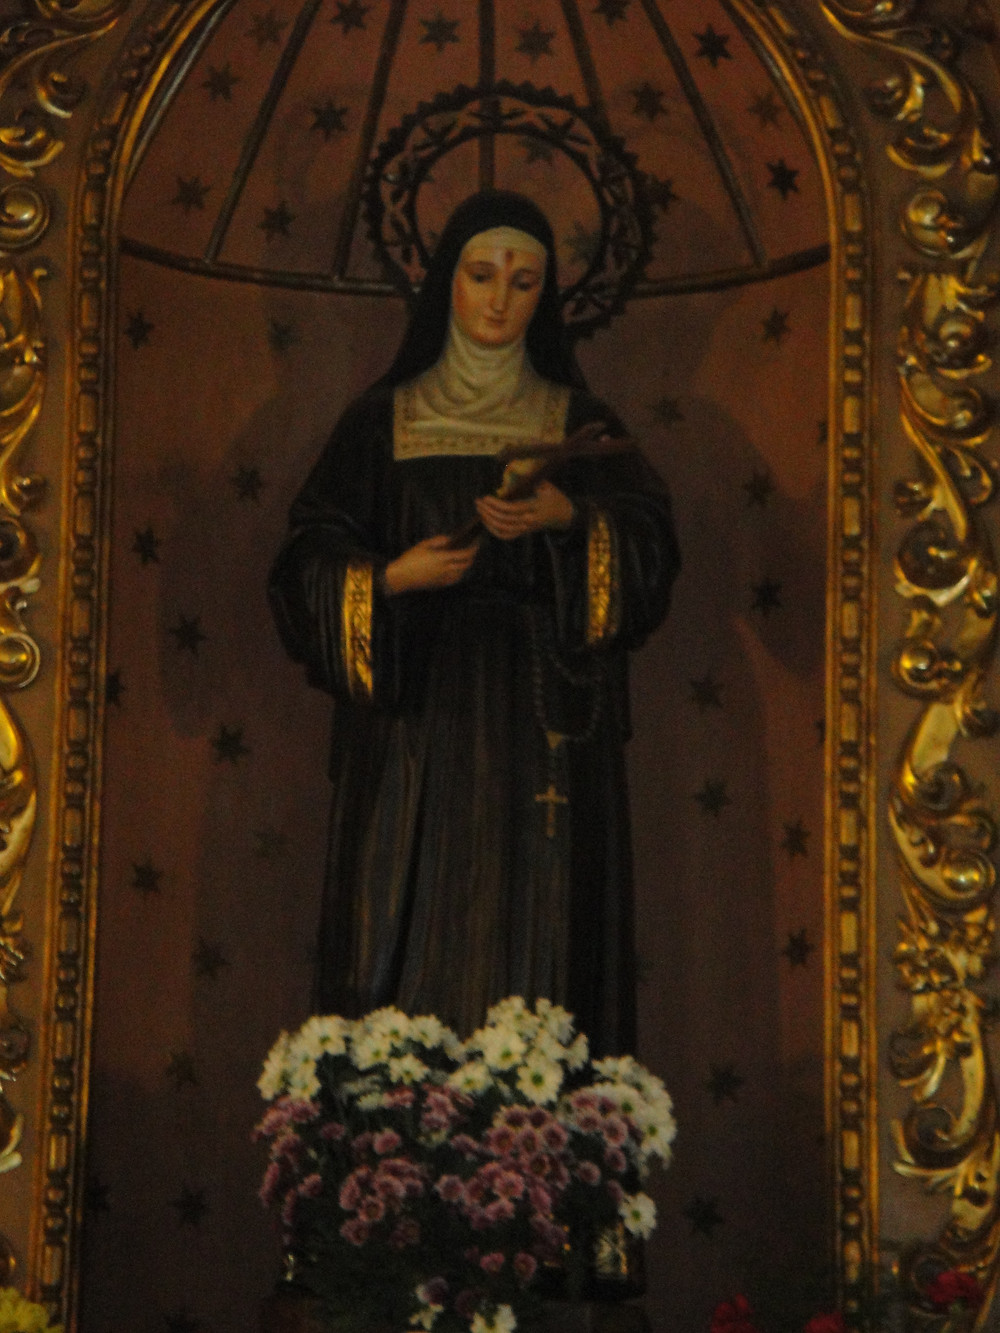 An image of a statue of St. Rita of Cascia, a woman in nun's robes. She holds a cross and her face is slightly downturned. There is a spot of blood on her forehead. A large bouquet of flowers is placed at her feet.